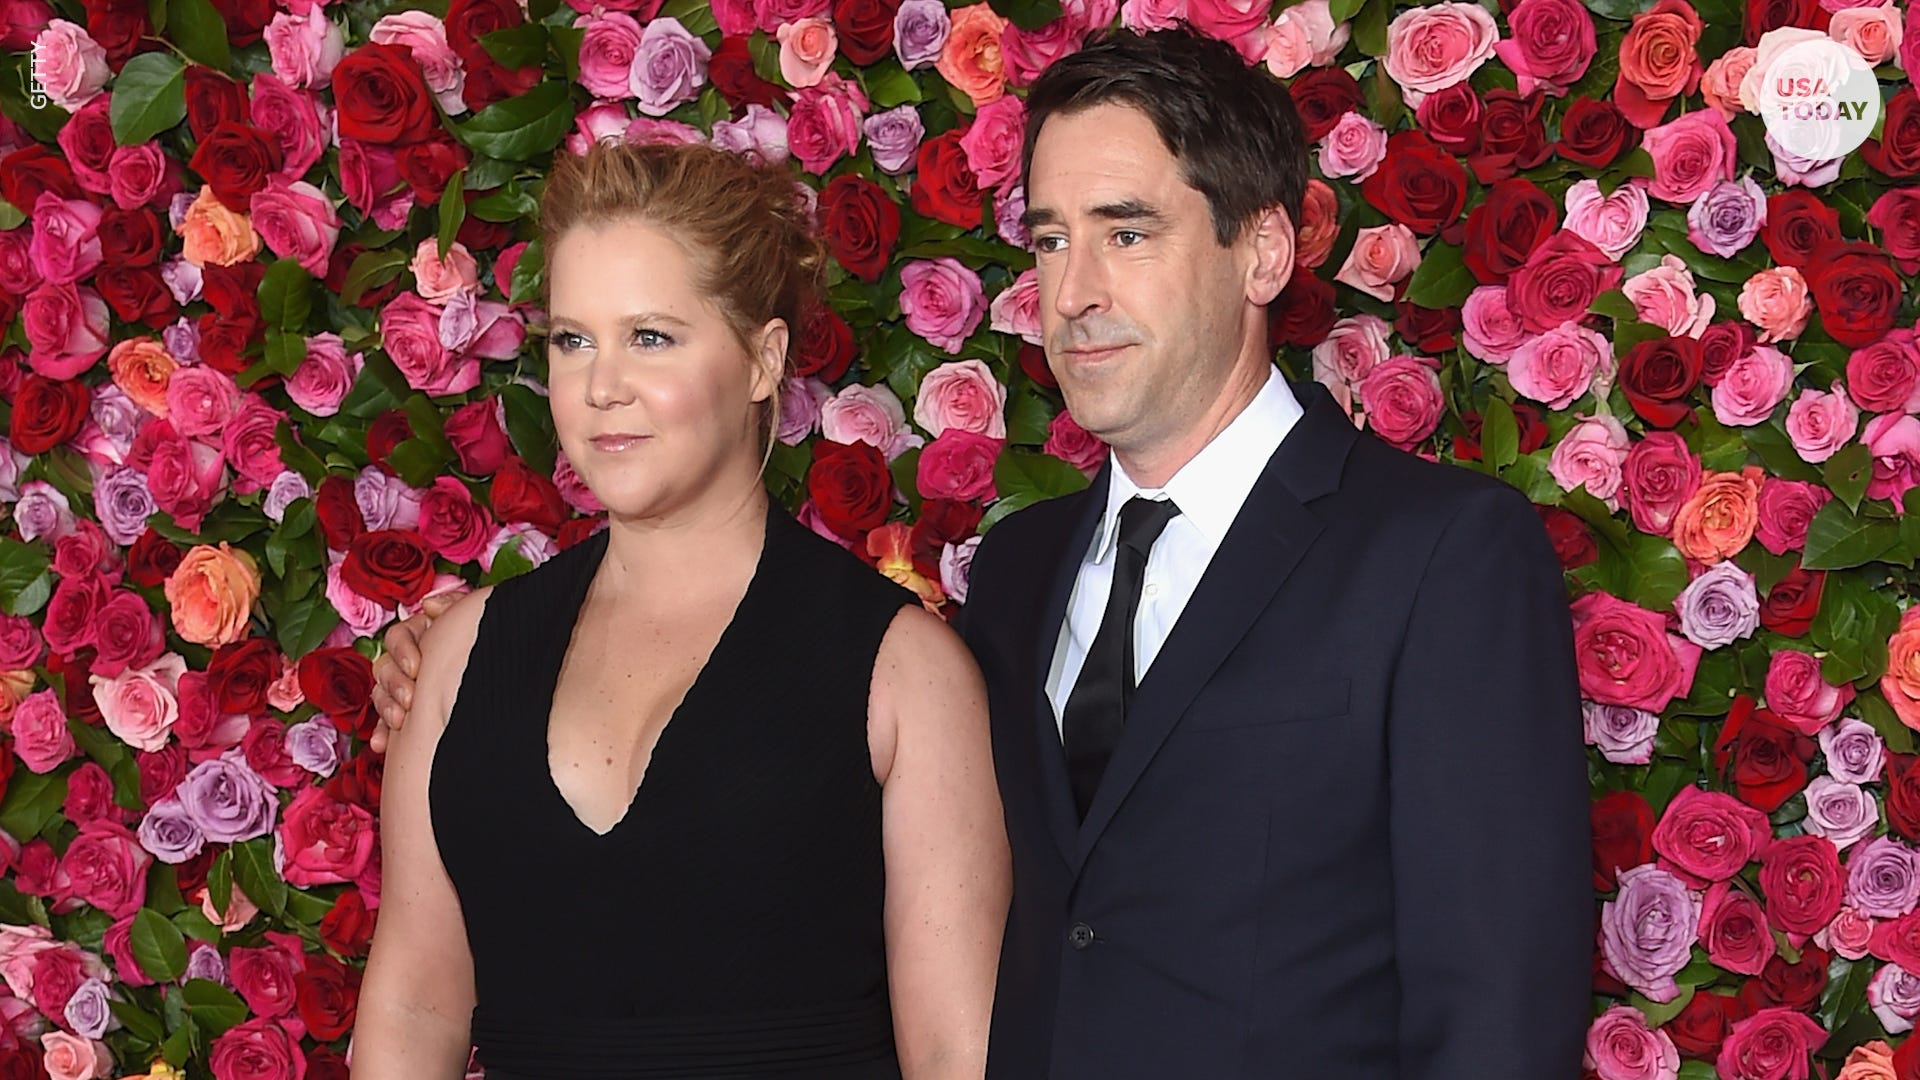 Both Autistic Men And Women Show >> Amy Schumer Husband Chris Fischer Want To Speak About His Autism